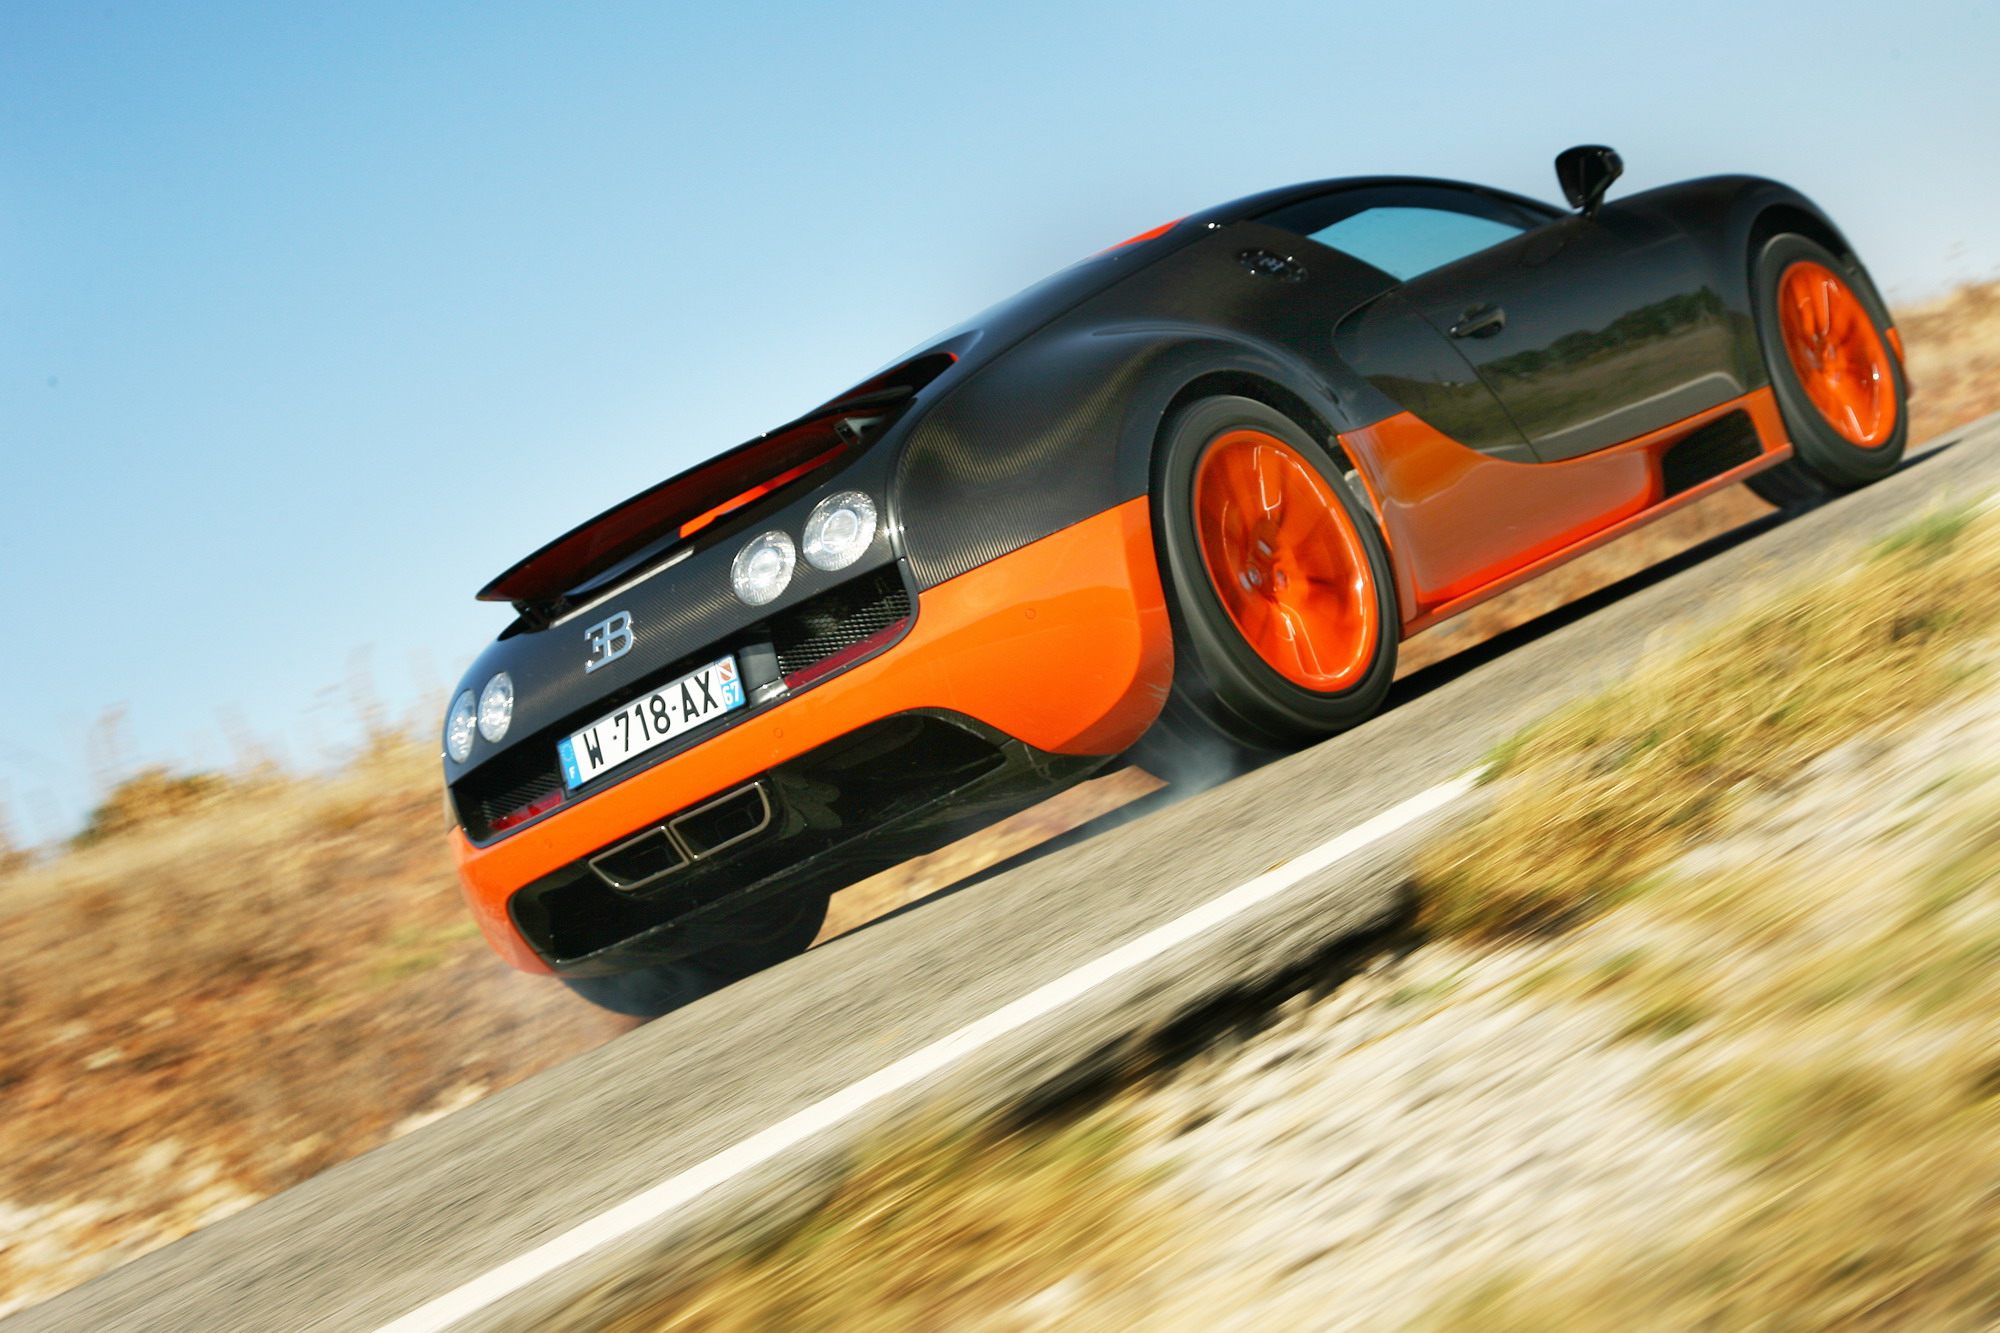 2011 Bugatti Veyron 16.4 Super Sport Review - Top Speed